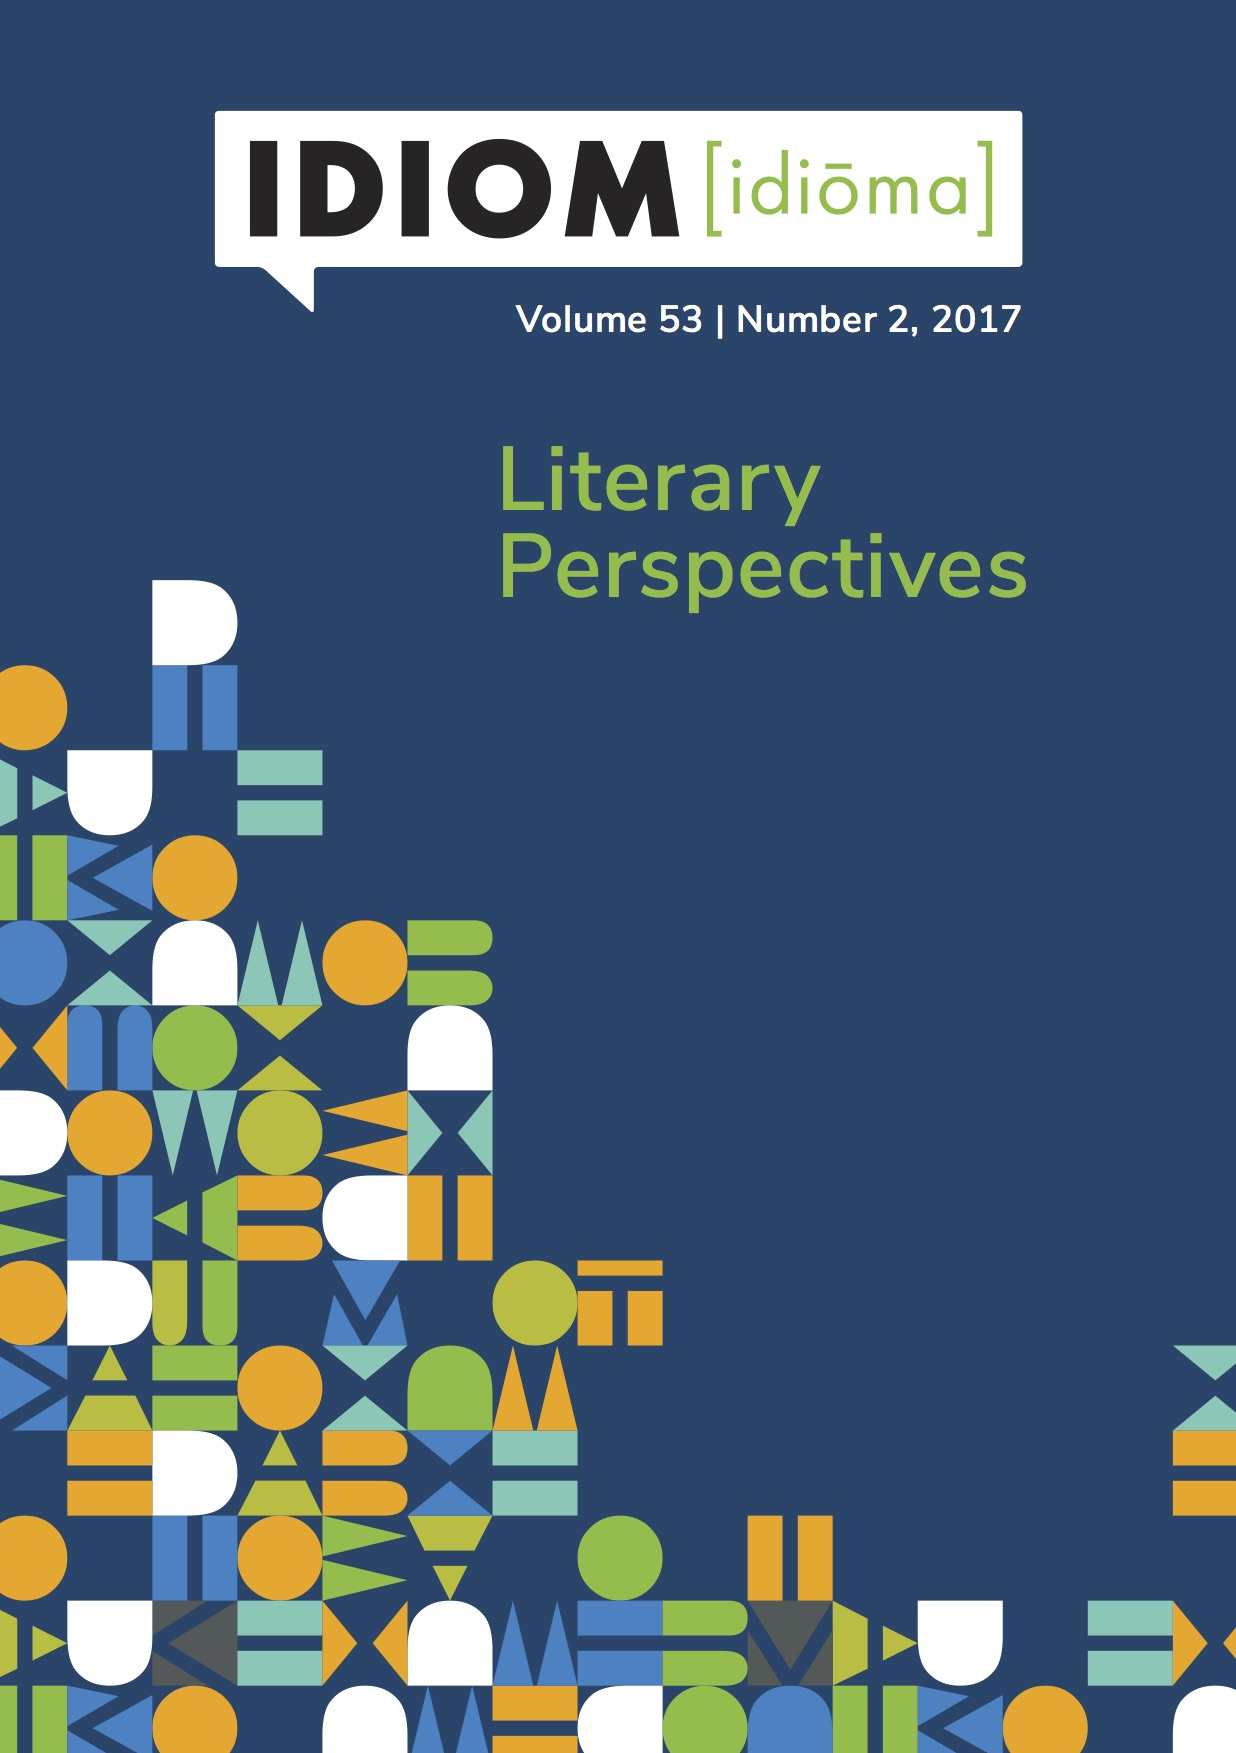 Idiom Volume 53 No 2, 2017 - Literary Perspectives